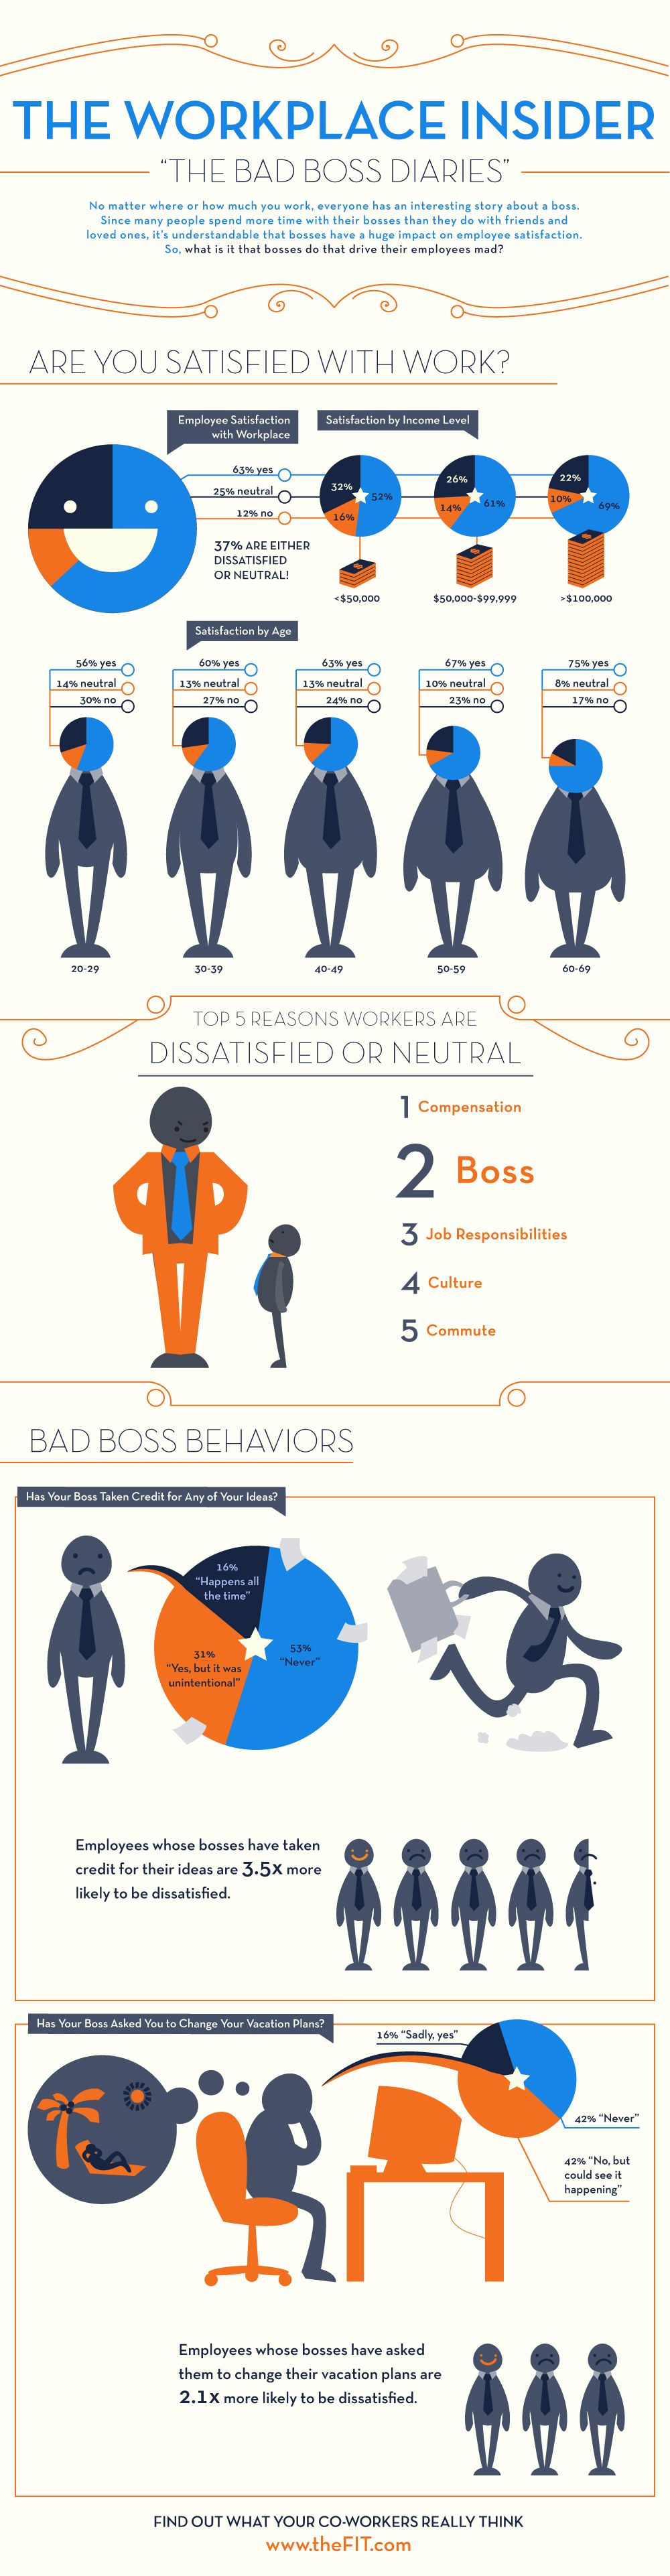 best images about bad bosses bad boss horrible 17 best images about bad bosses bad boss horrible bosses and tossed